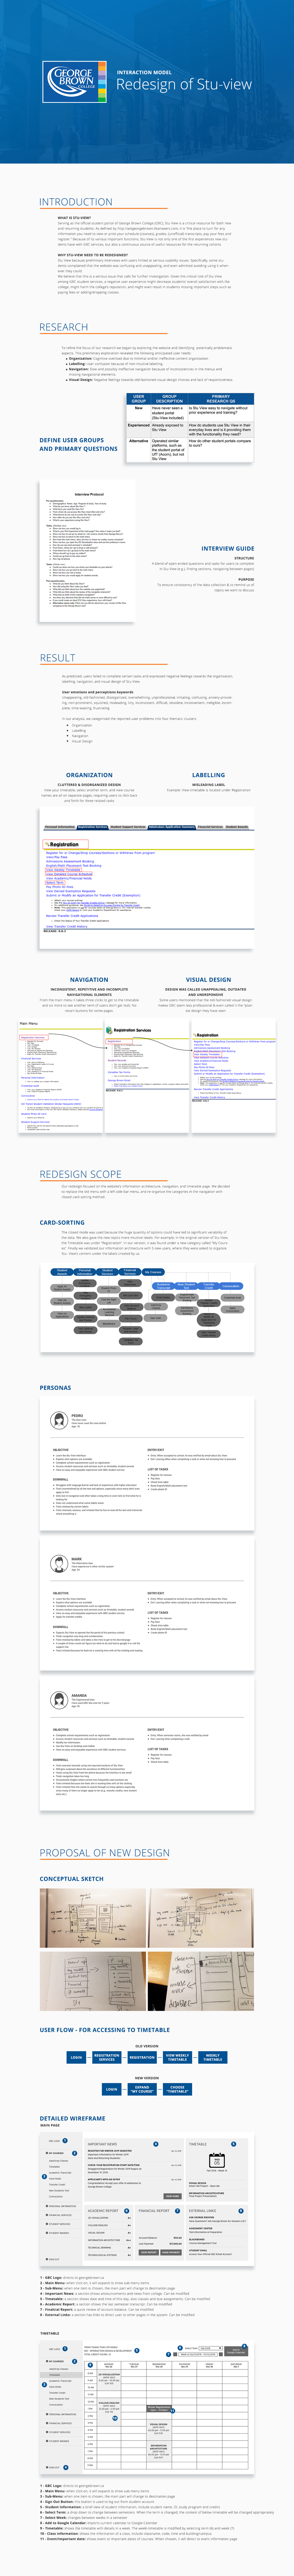 Ux Case George Brown College Stu View Redesign On Behance